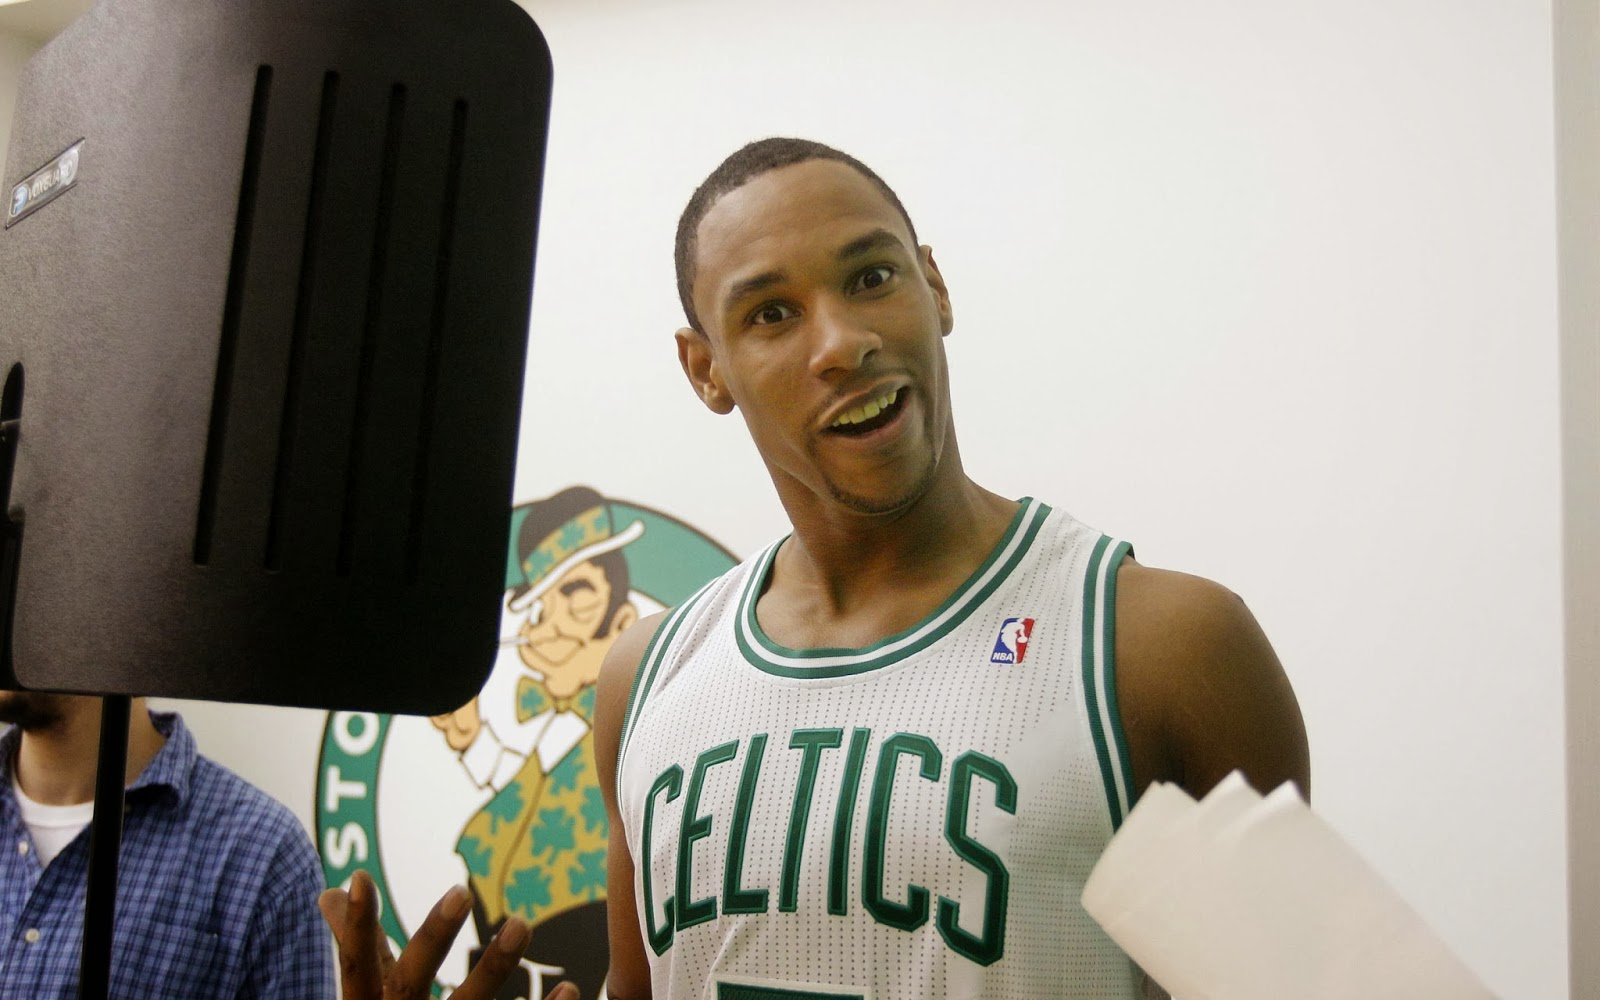 xJared-Sullinger-Boston-Celtics-wallpaper.jpg.pagespeed.ic.hsUJWygOIL